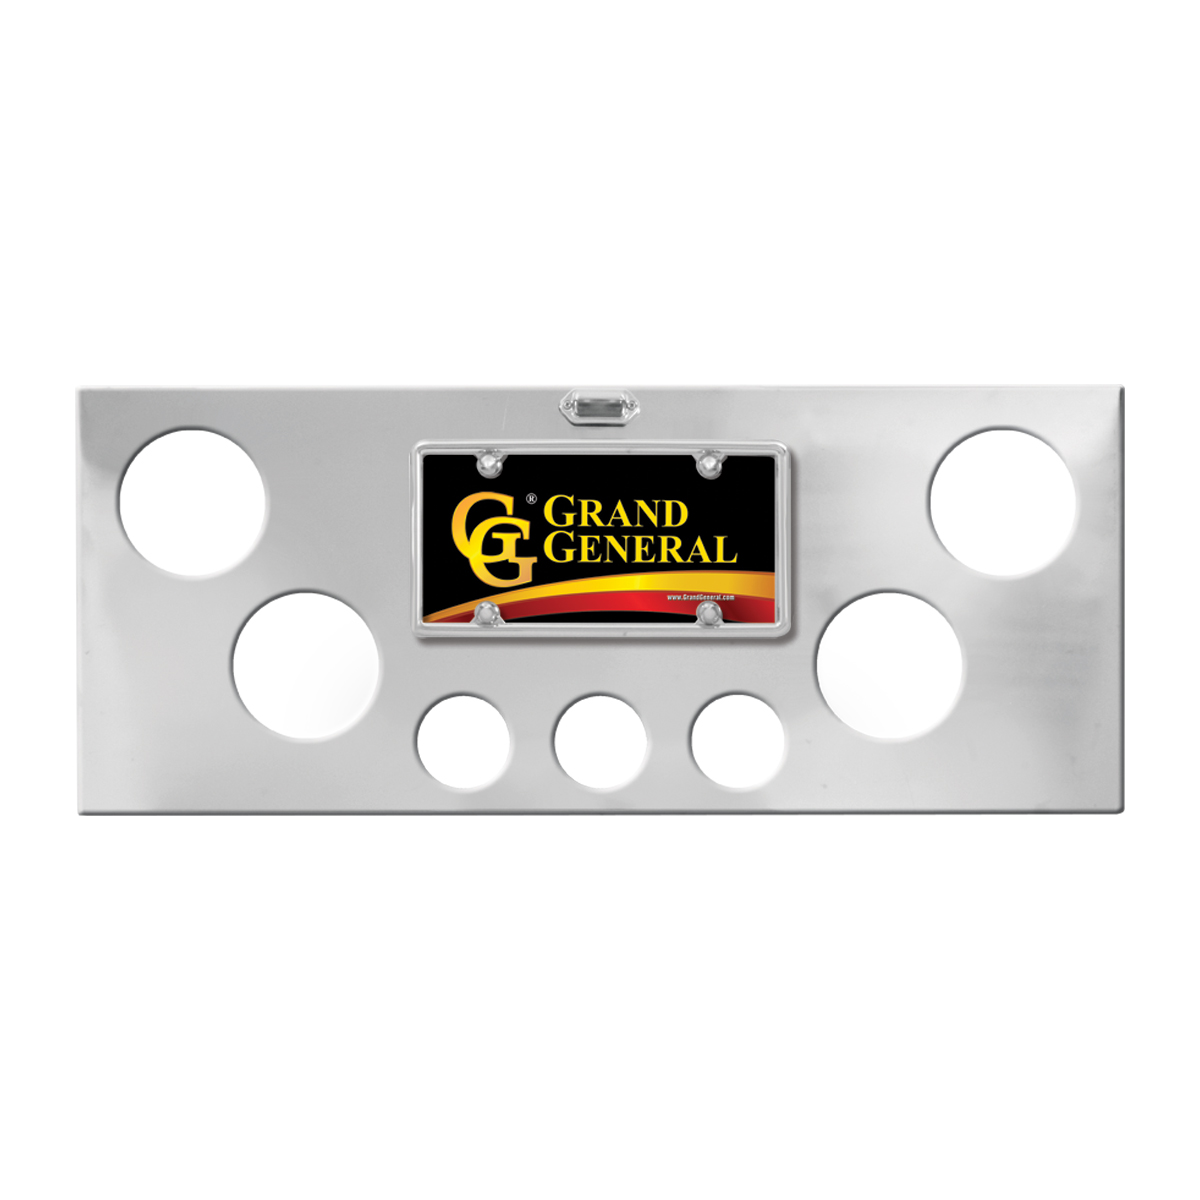 Chrome Plated Steel Rear Center Panel with Backing Plate Only